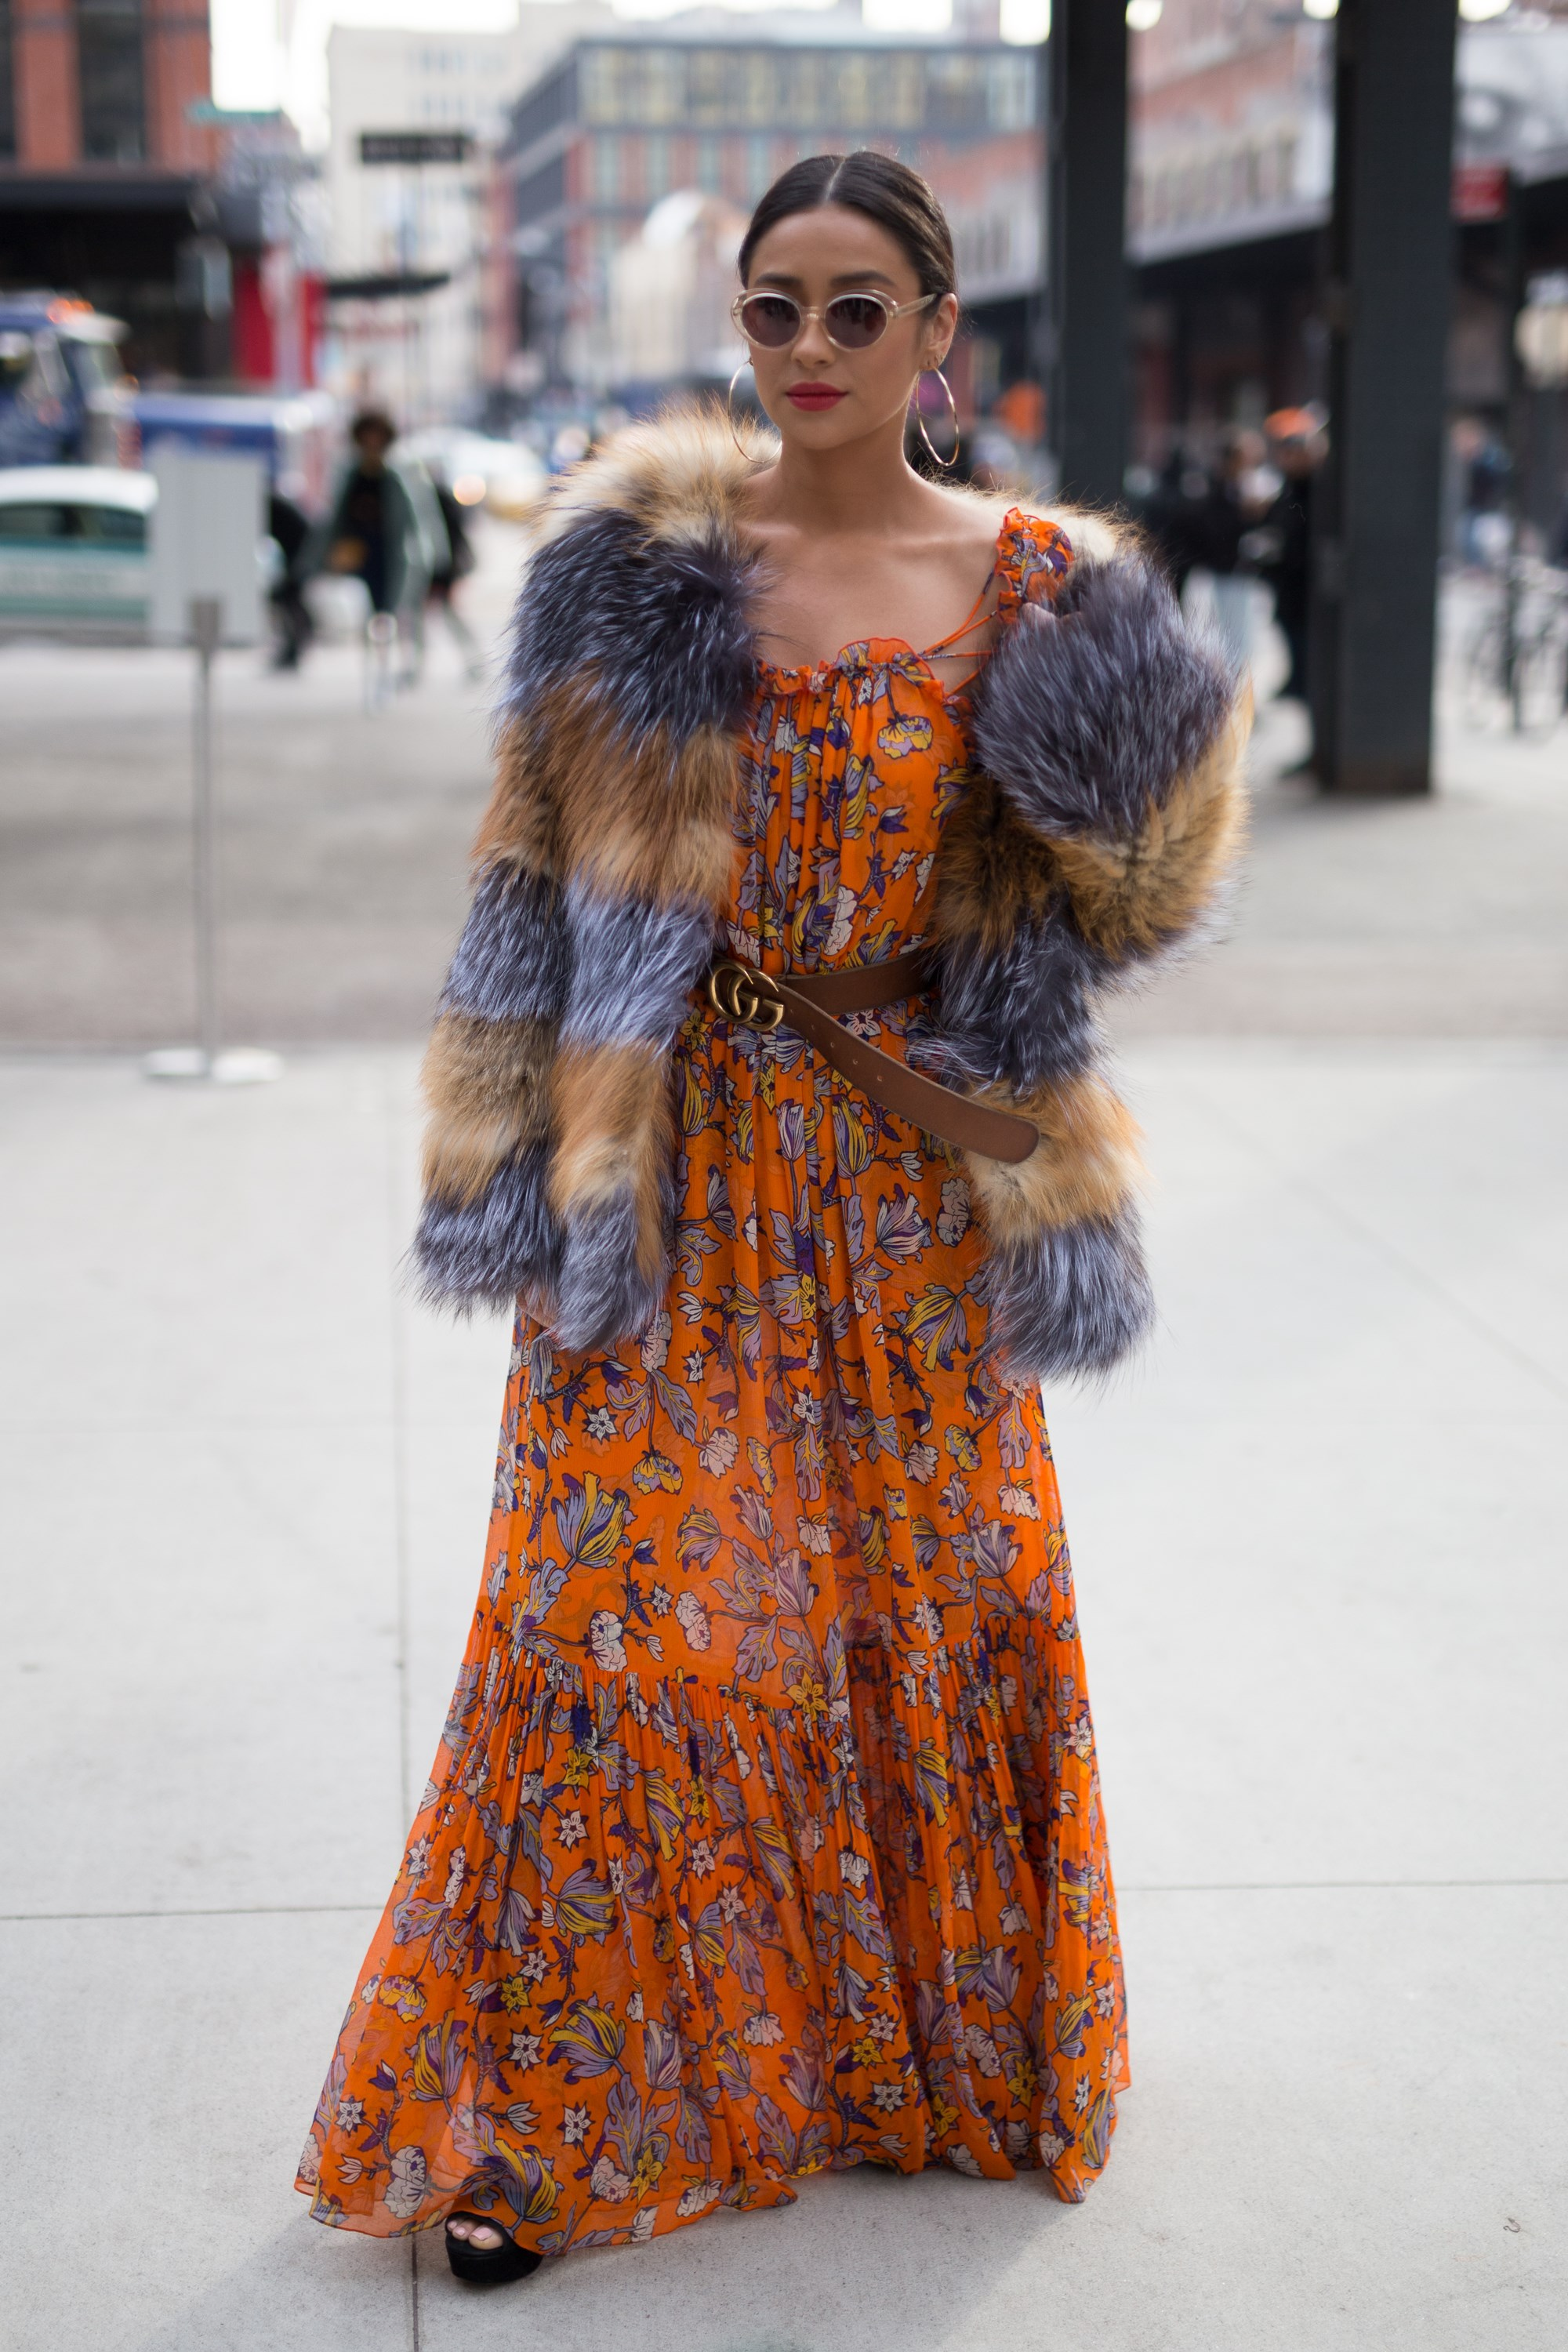 SPOTTED:  Shay Mitchell outside the Tory Burch fashion show during New York Fashion Week, serving up some serious boho outfit goals.